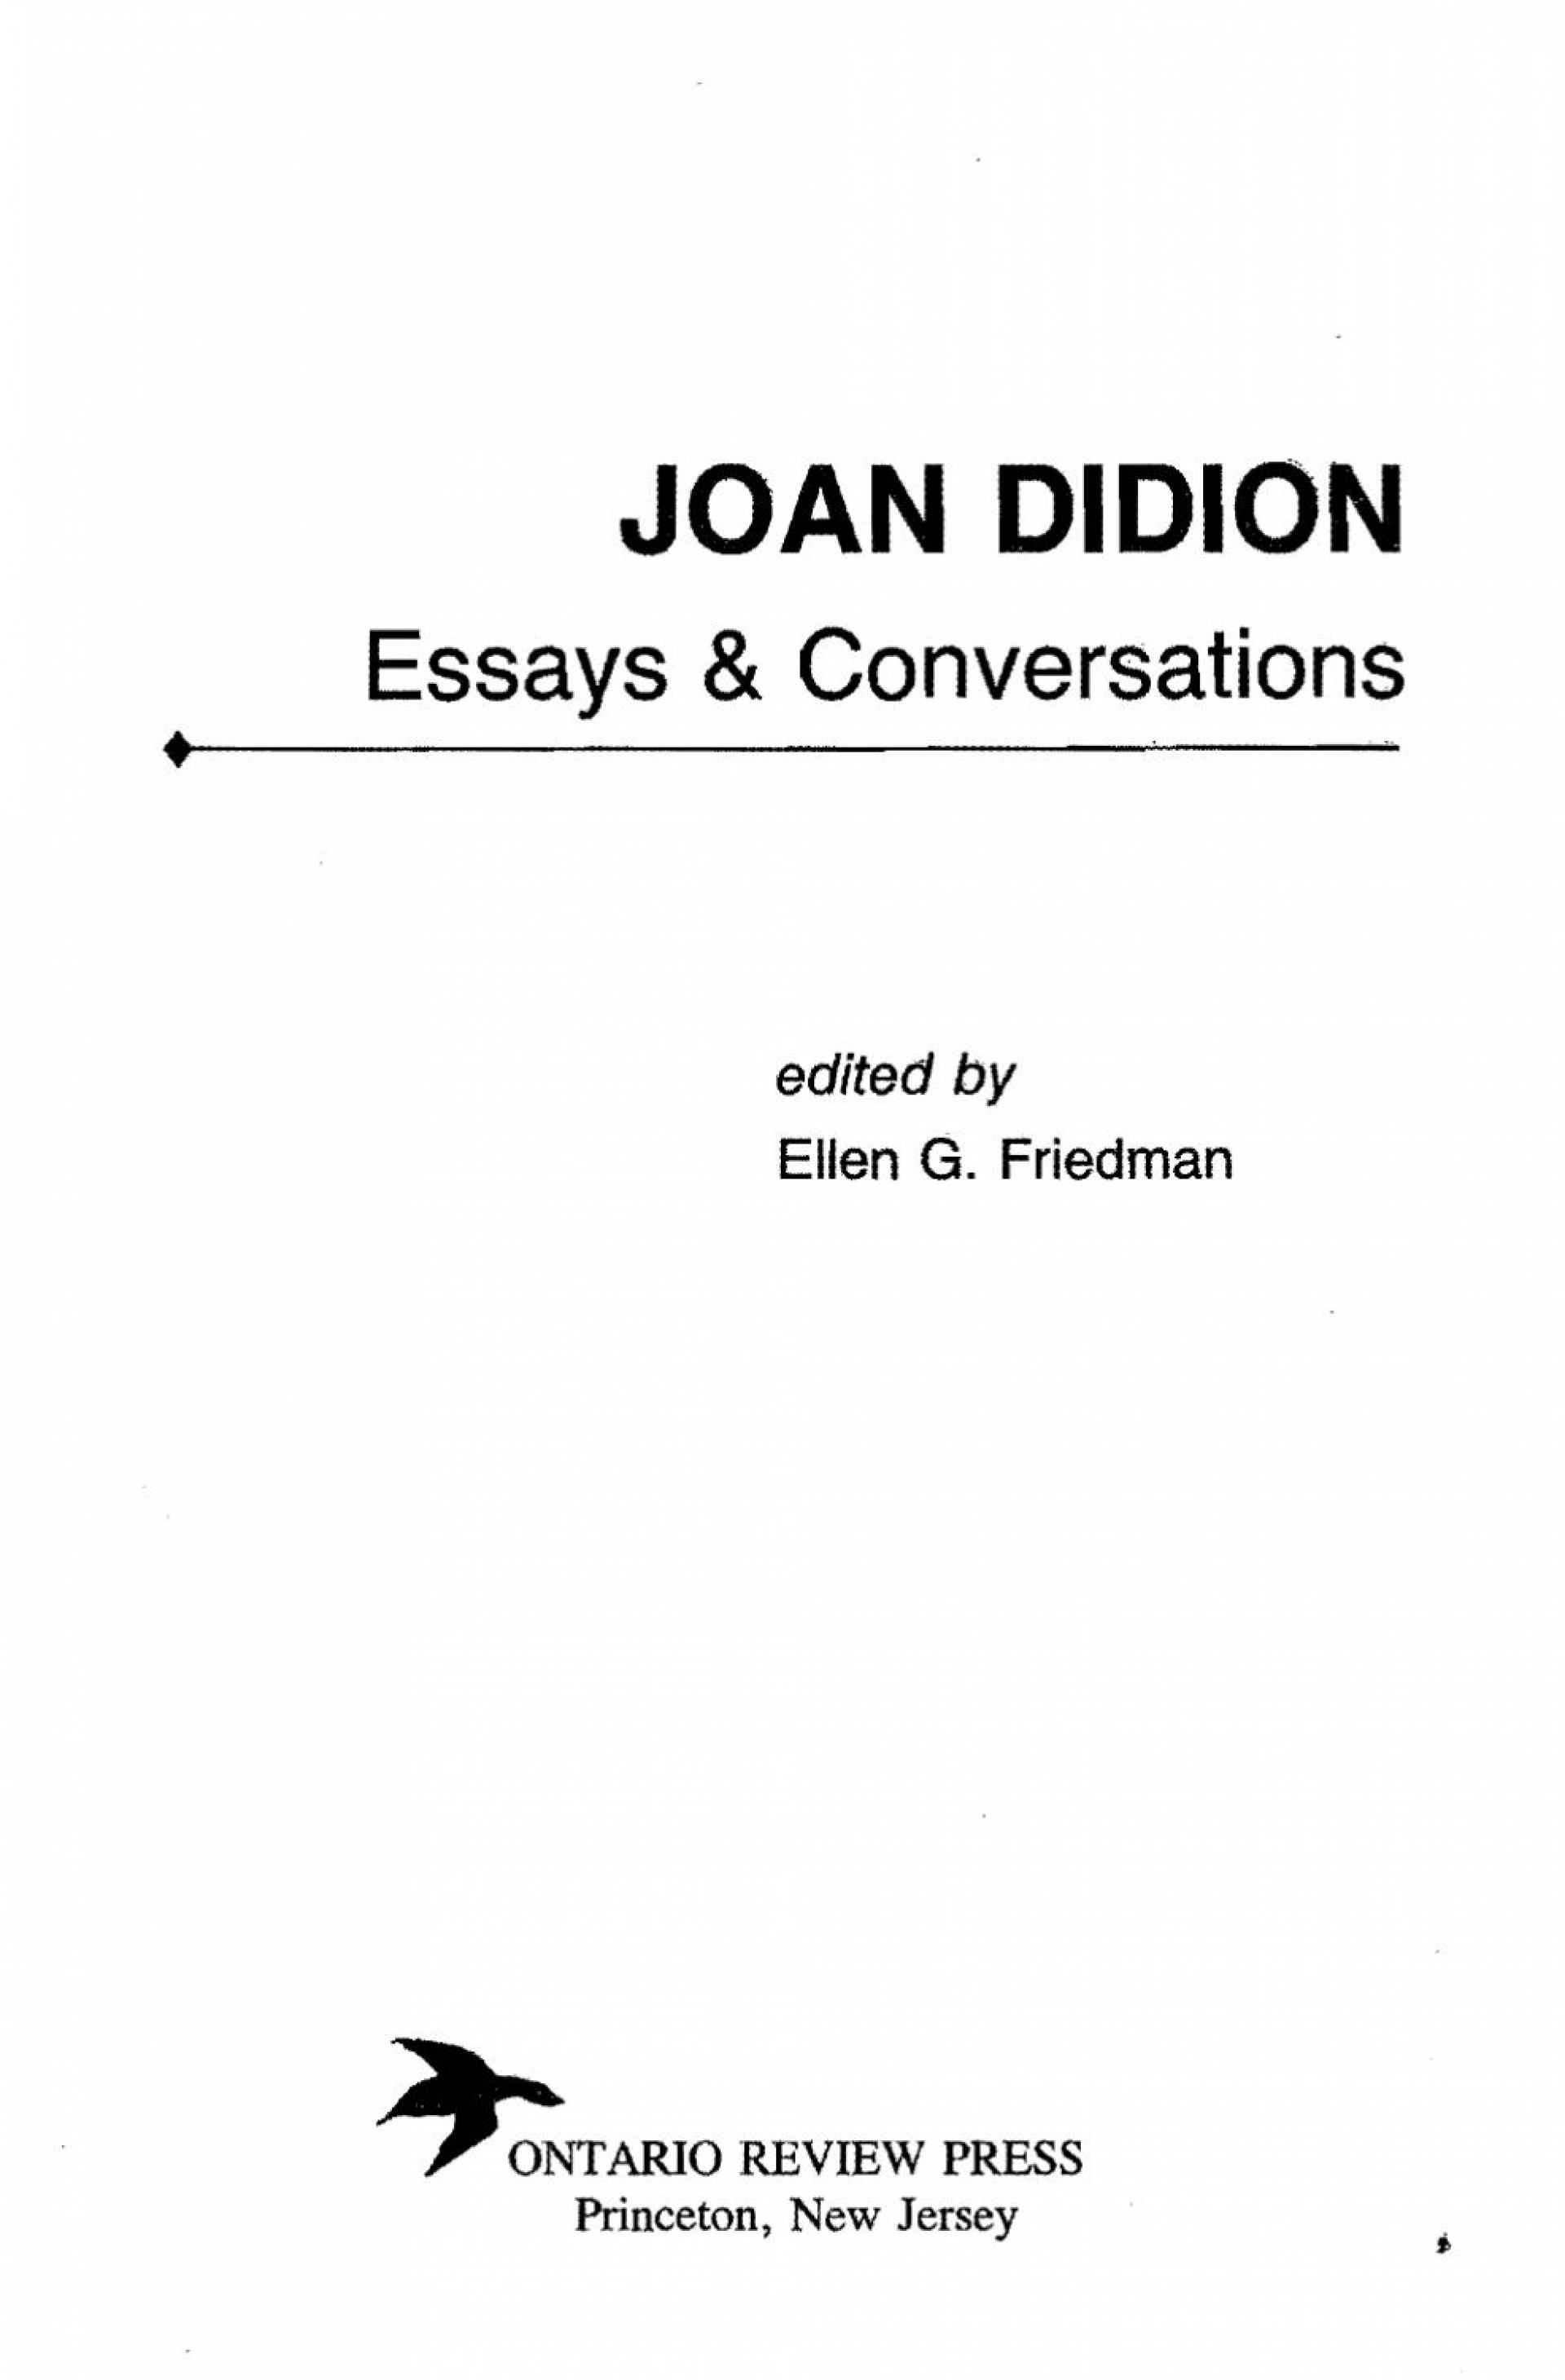 017 Essay Example Page 1 Joan Didion Singular Essays On Santa Ana Winds Collections 1920